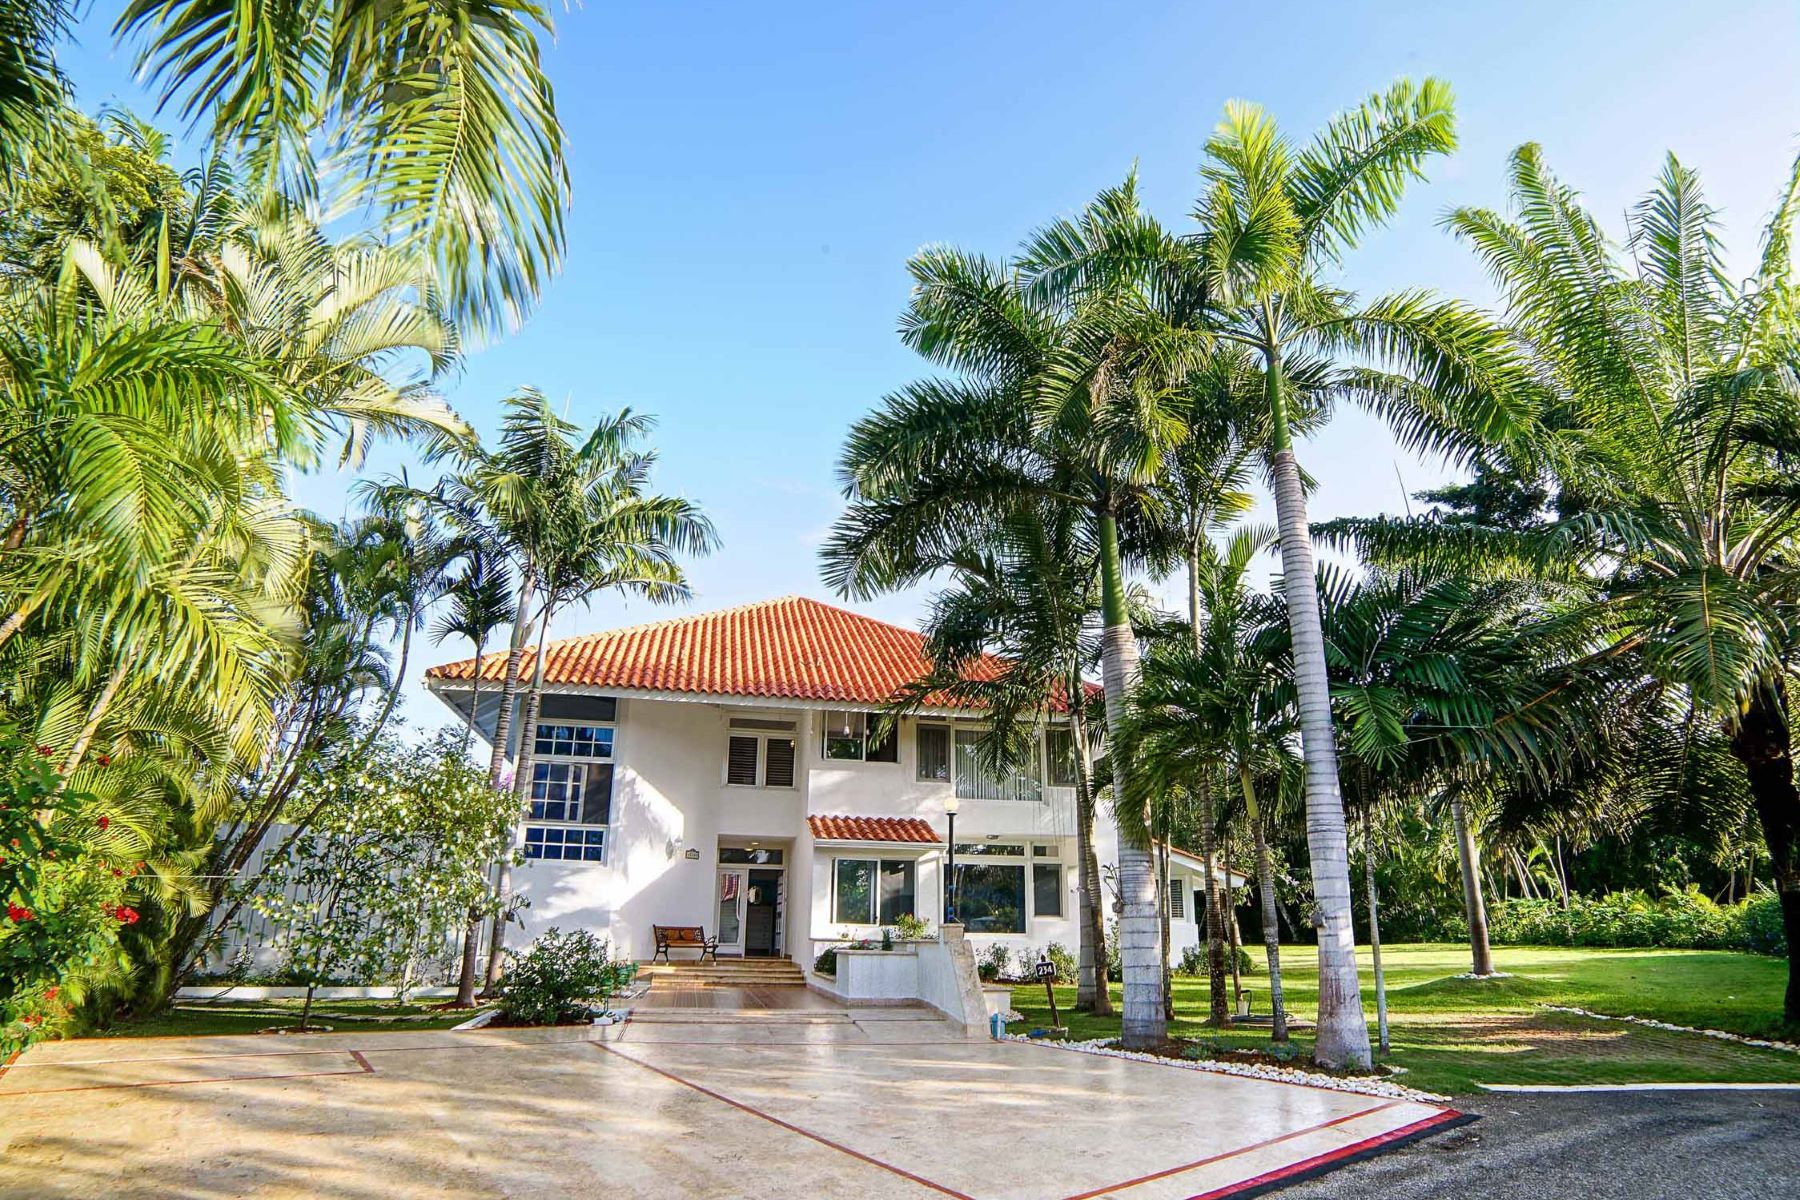 Single Family Home for Sale at Golf Villa # 234 Casa De Campo, La Romana Dominican Republic